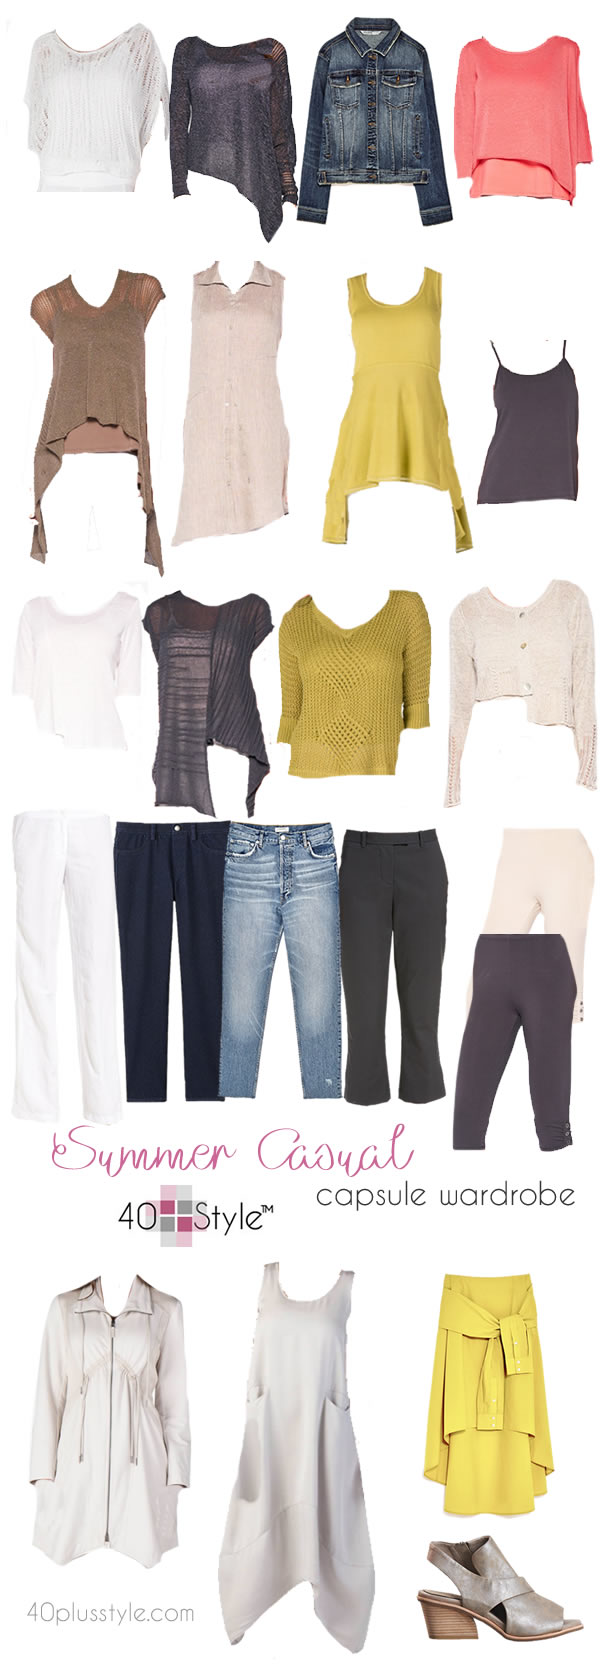 A capsule wardrobe for summer that is comfortable AND chic | 40plusstyle.com